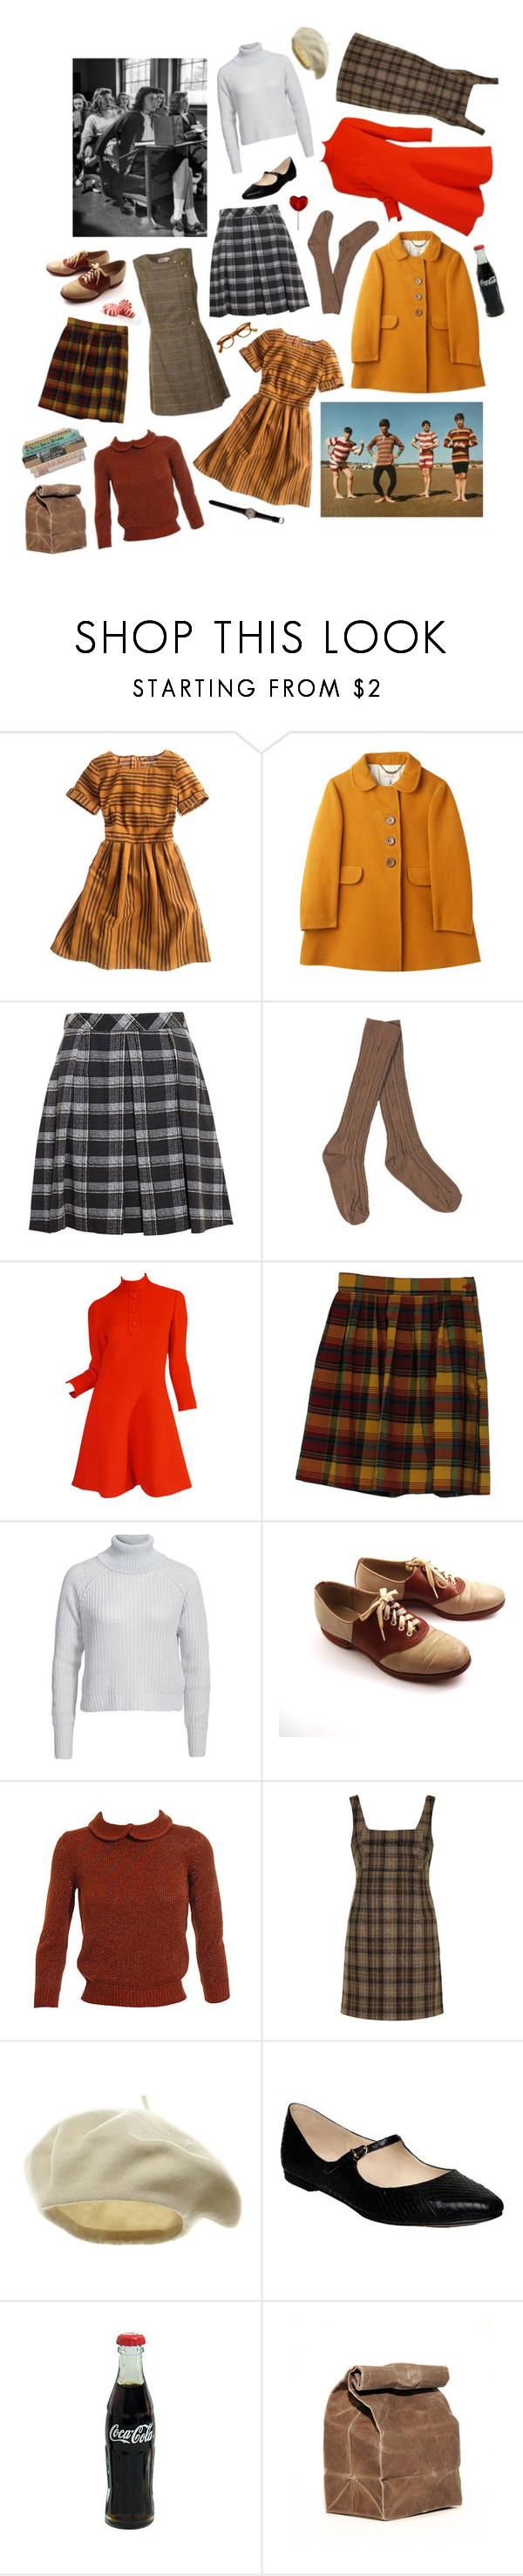 """Year 1965"" by dulceelena ❤ liked on Polyvore featuring Madewell, Proenza Schouler, Noisy May, Hannah Marshall, Jil Sander, Unique, Weston and Pied a Terre"